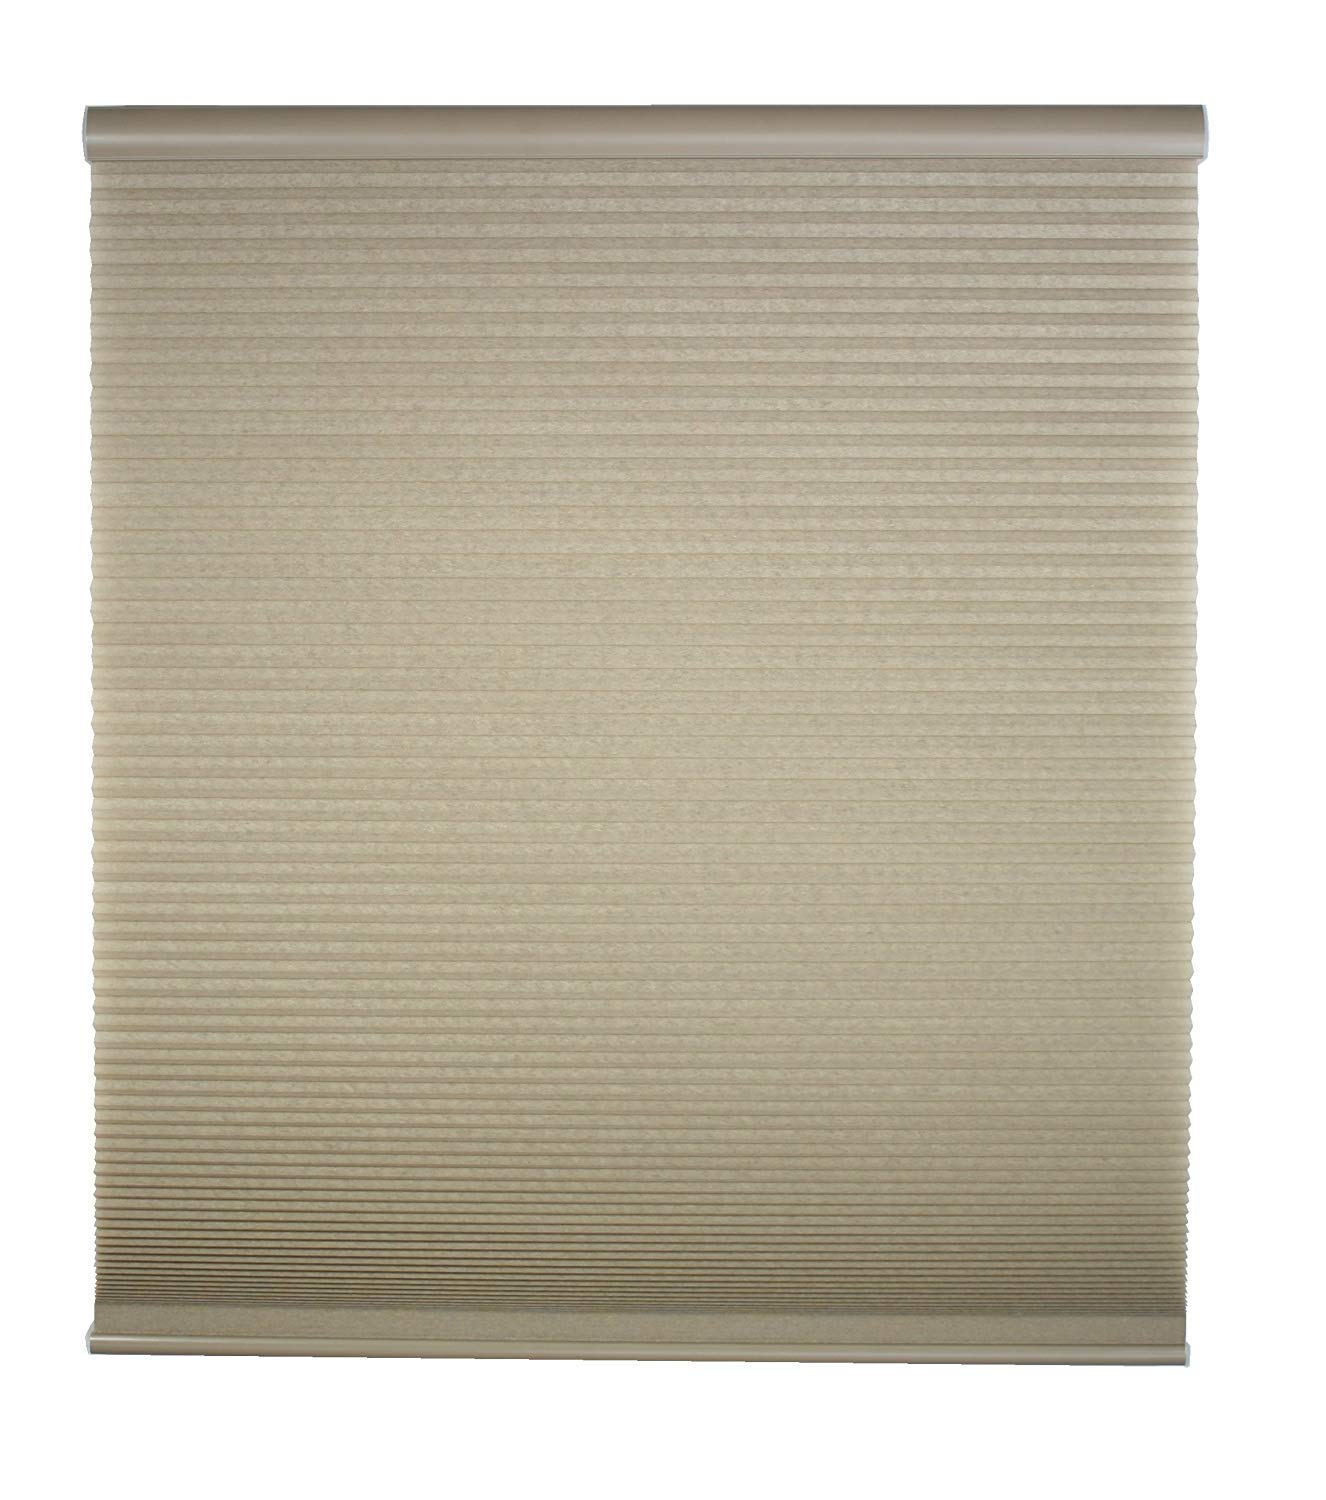 34.5W x 48H Inches DEZ Furnishings QCLN344480 Cordless Light Filtering Cellular Shade Linen